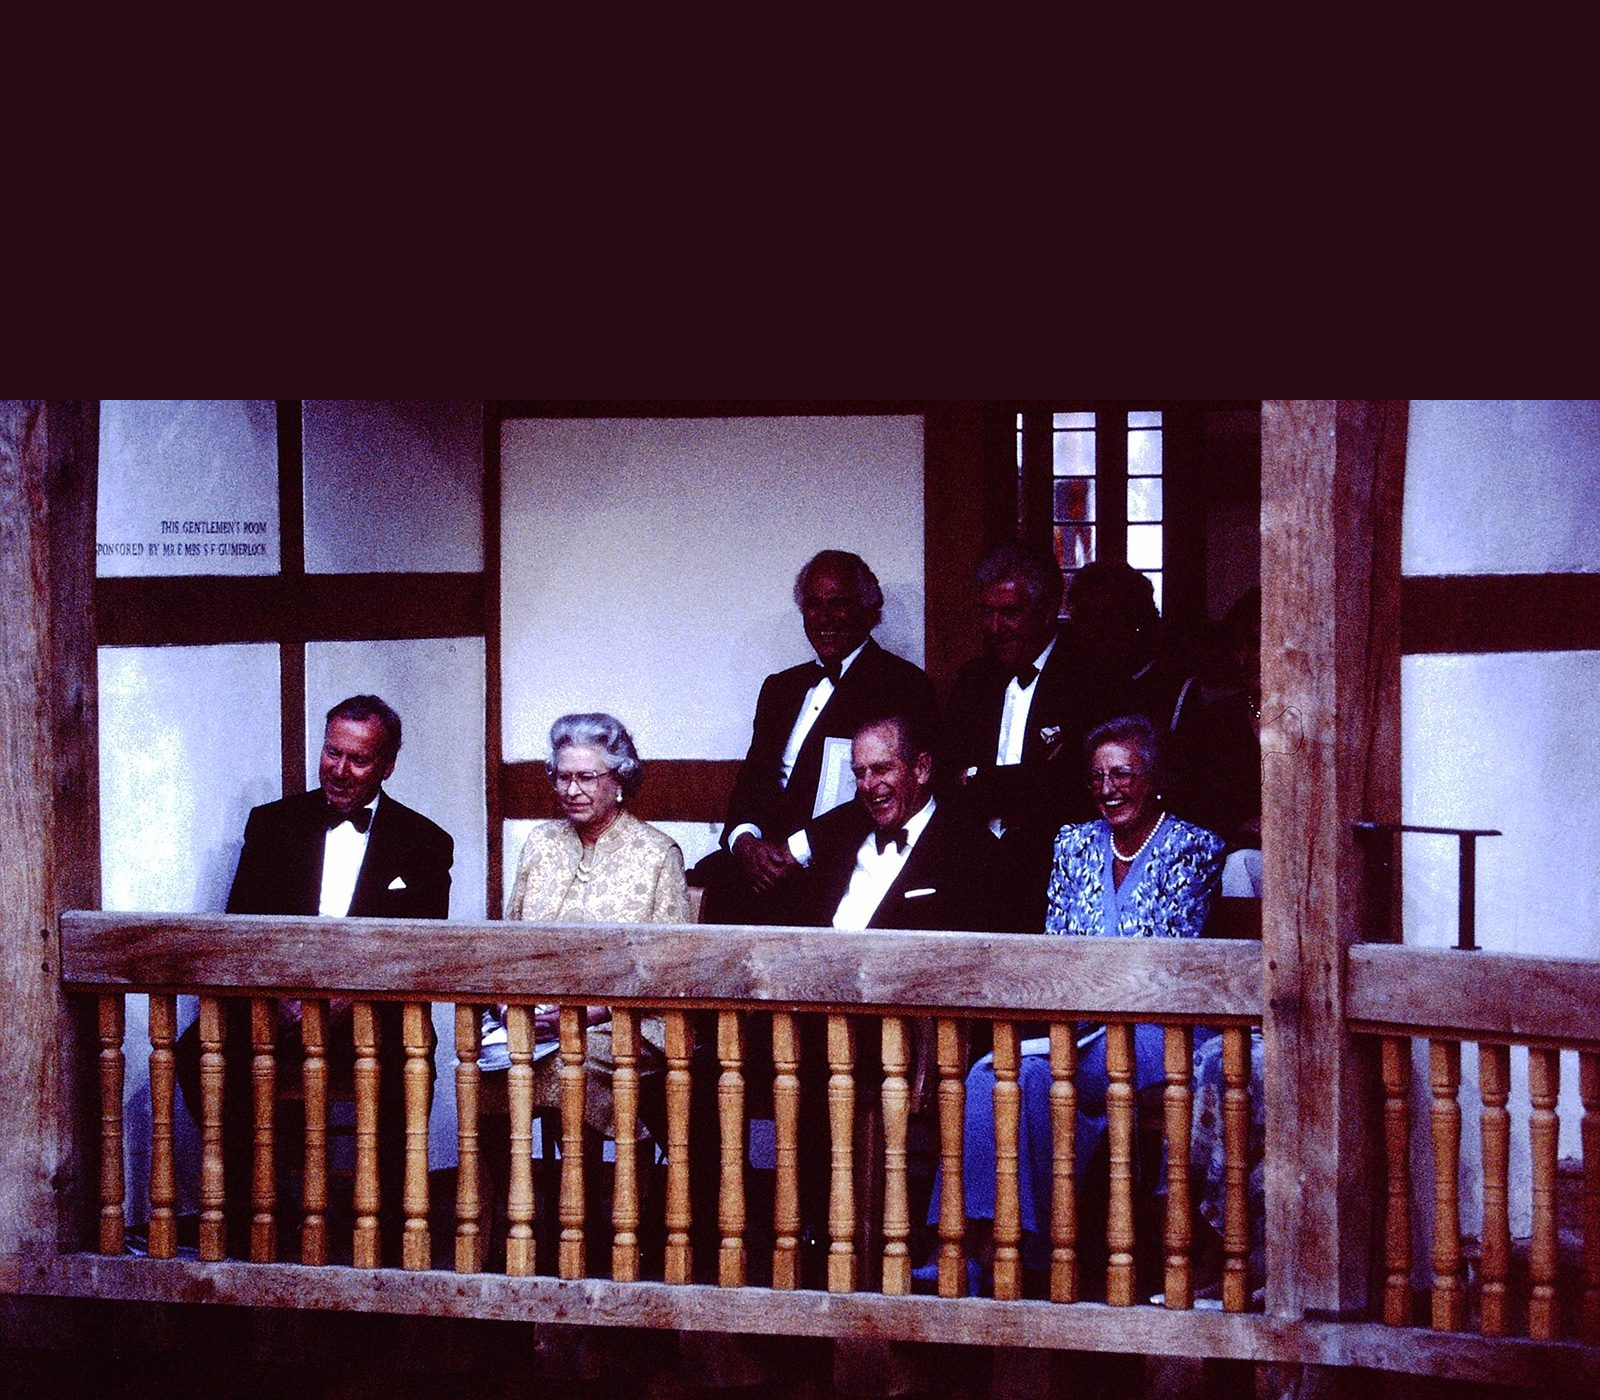 Her Majesty The Queen and His Royal Highness The Prince Philip, Duke of Edinburgh attend the opening of Shakespeare's Globe, 12 June 1997. (Photo Credit: Shakespeare's Globe; Photographer: Richard Kalina).